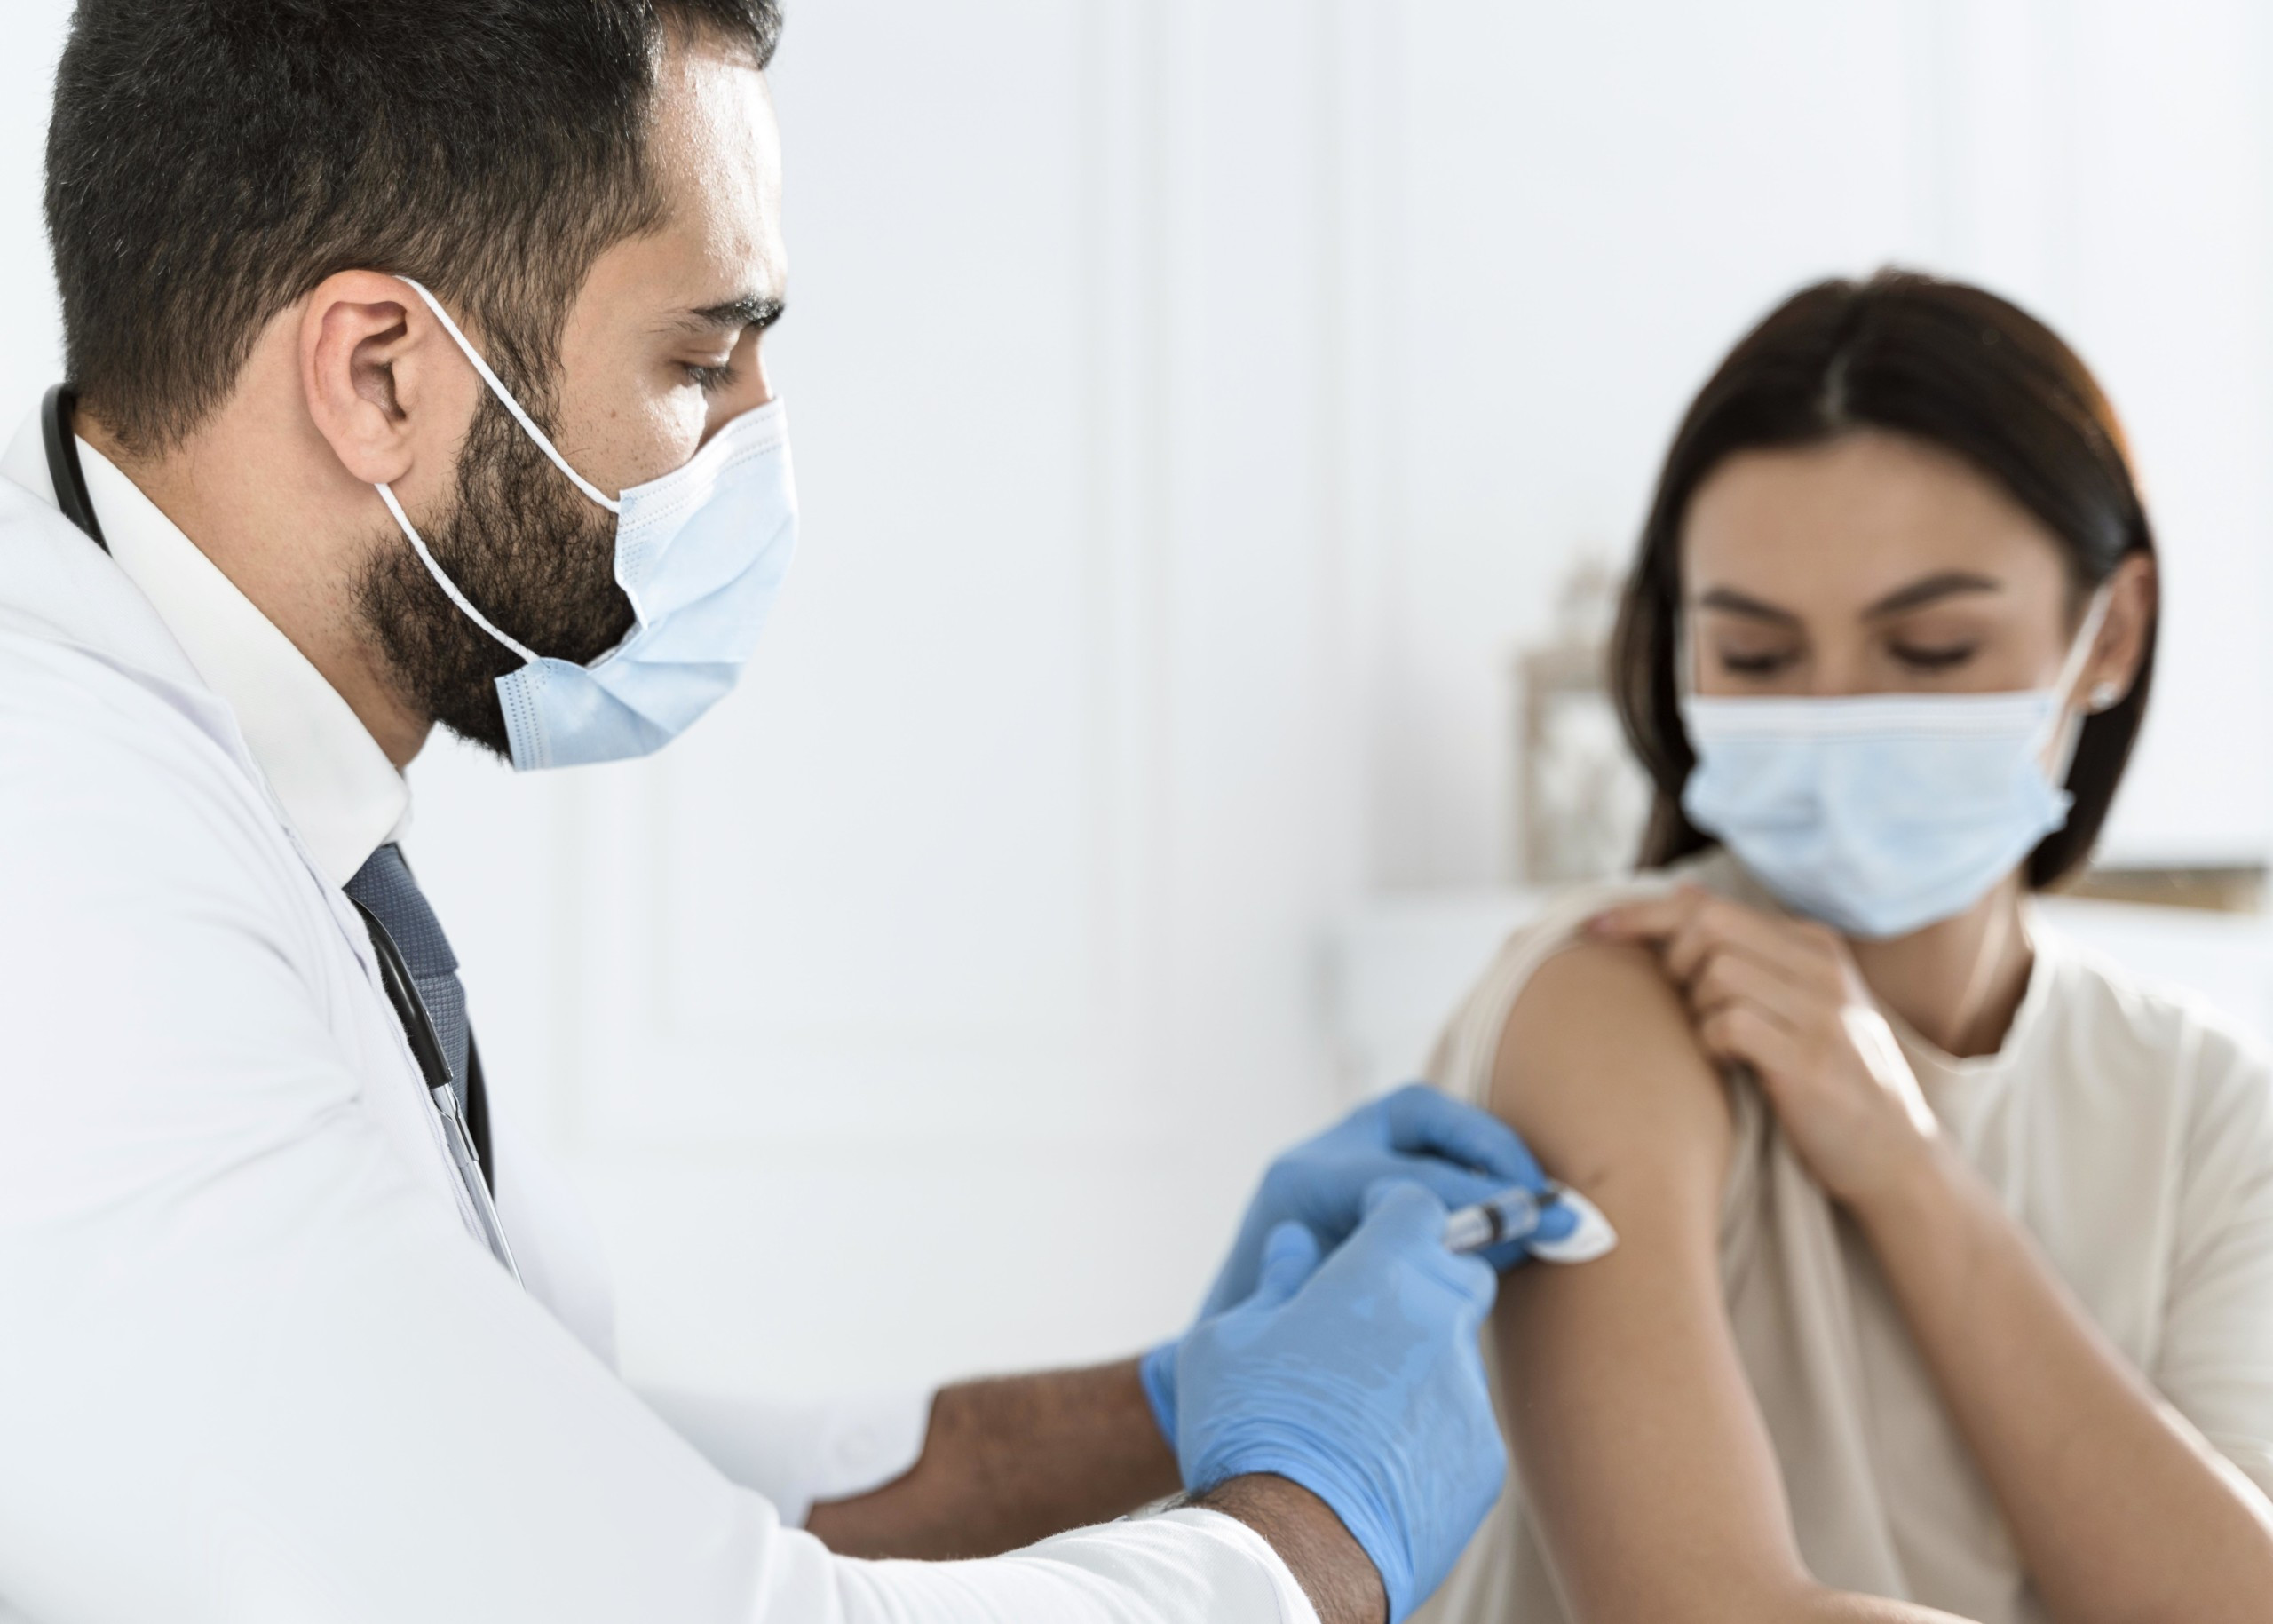 doctor-vaccinating-young-woman